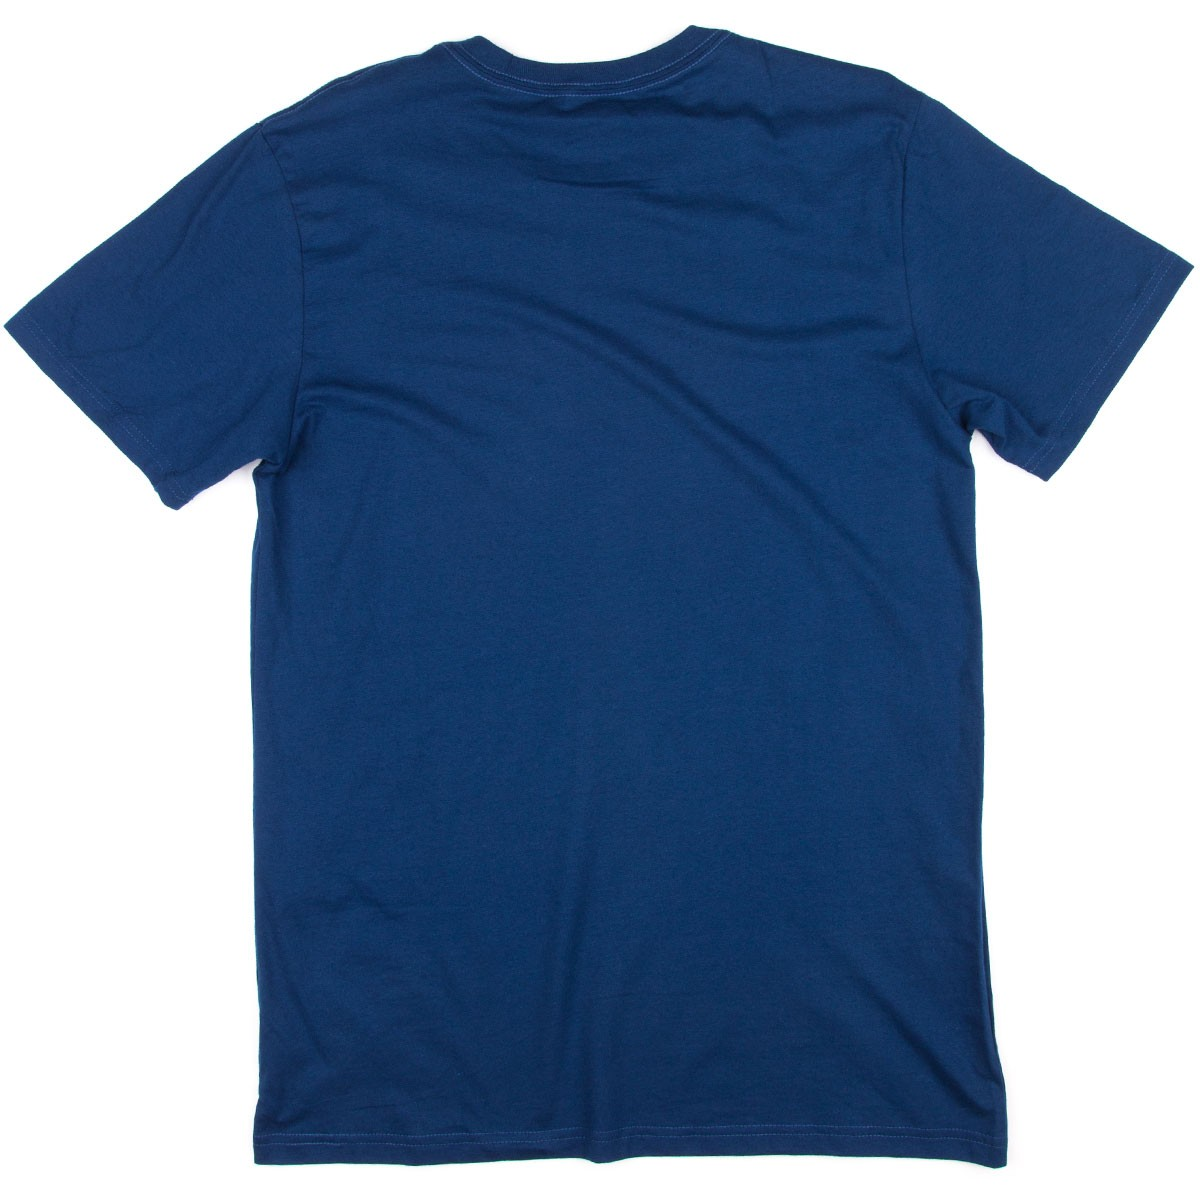 Find great deals on eBay for dark blue t shirt. Shop with confidence.